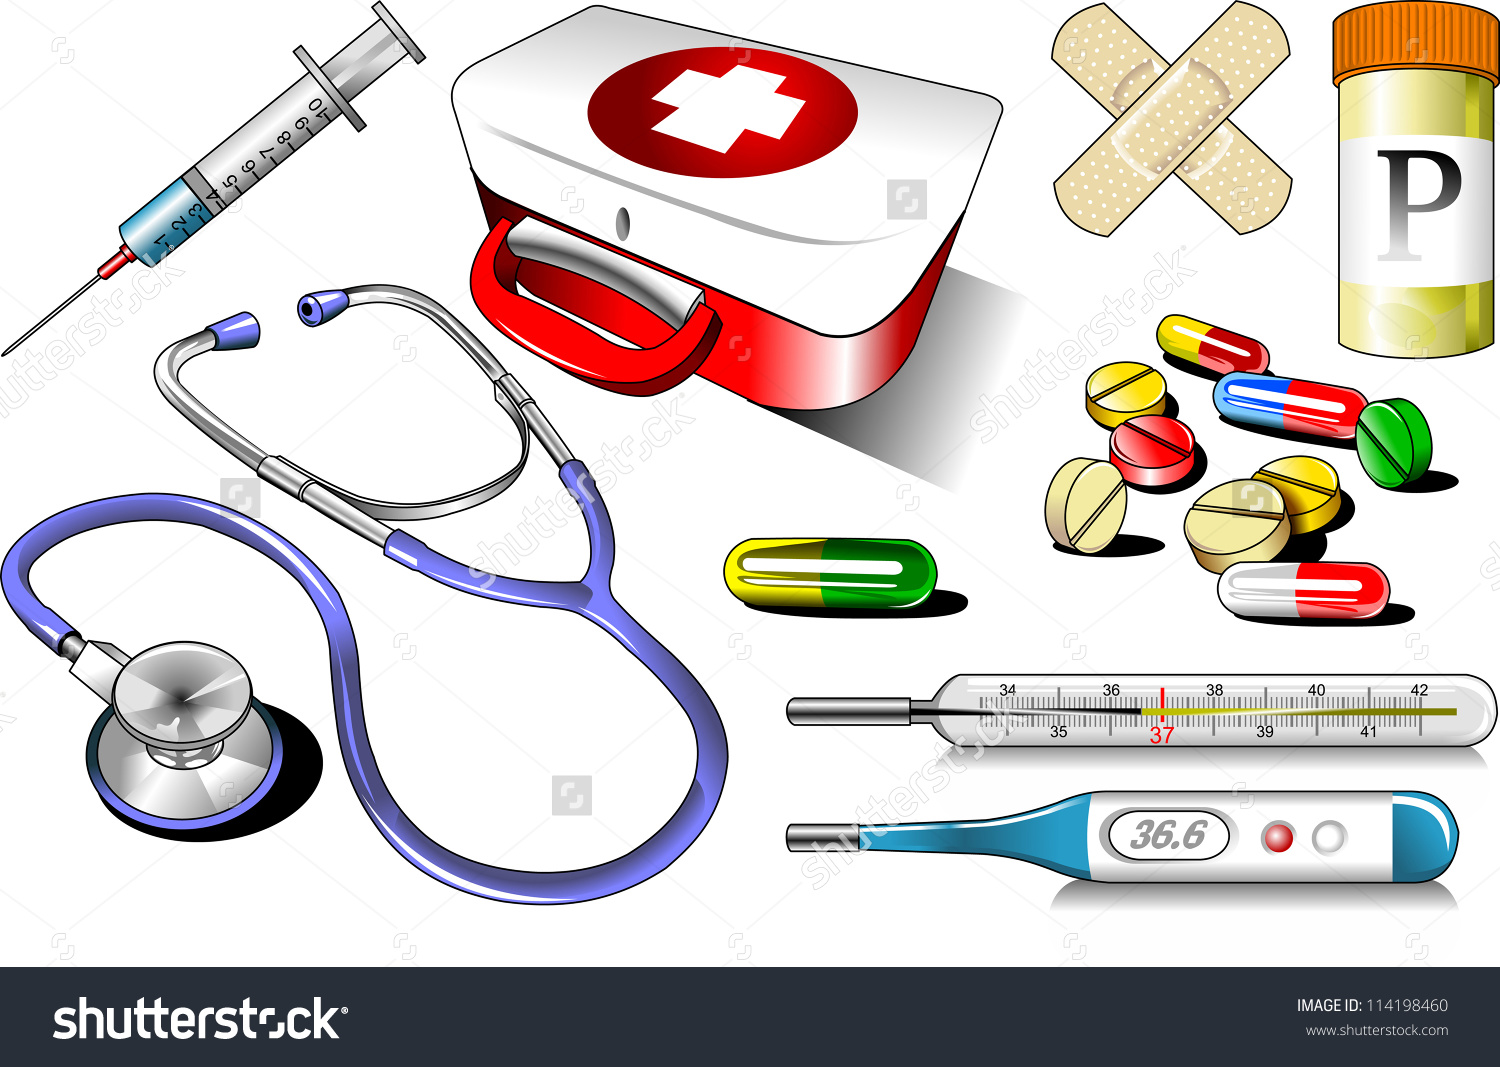 Medical technical equipment clipart 20 free Cliparts ...